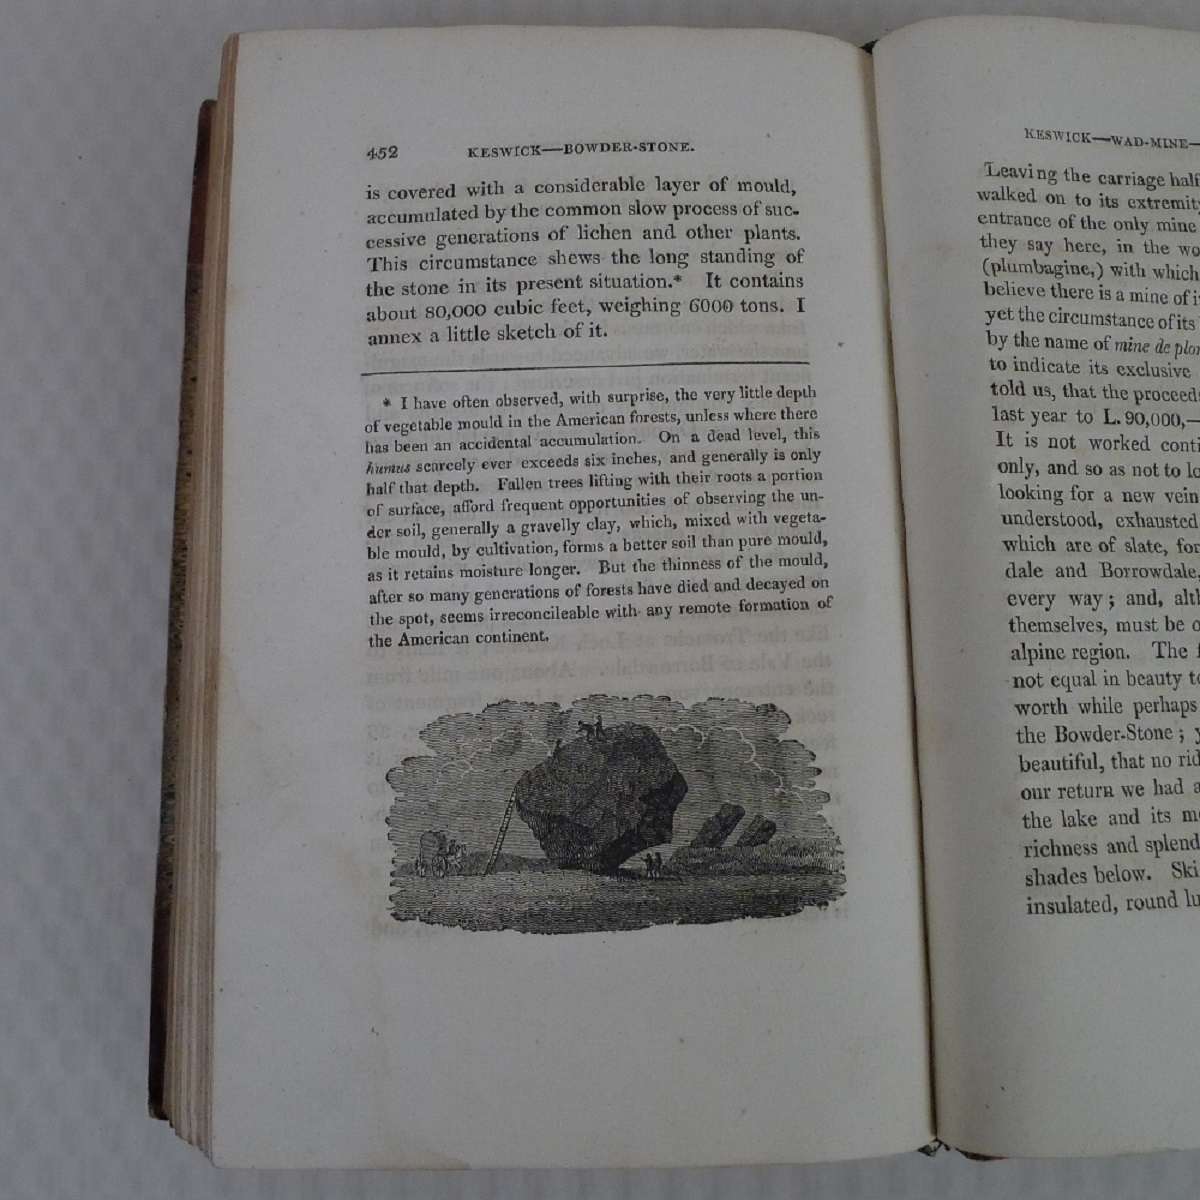 Simond's Travels in Great Britain Volumes I and II, Second Edition published in 1817, being a - Image 9 of 9